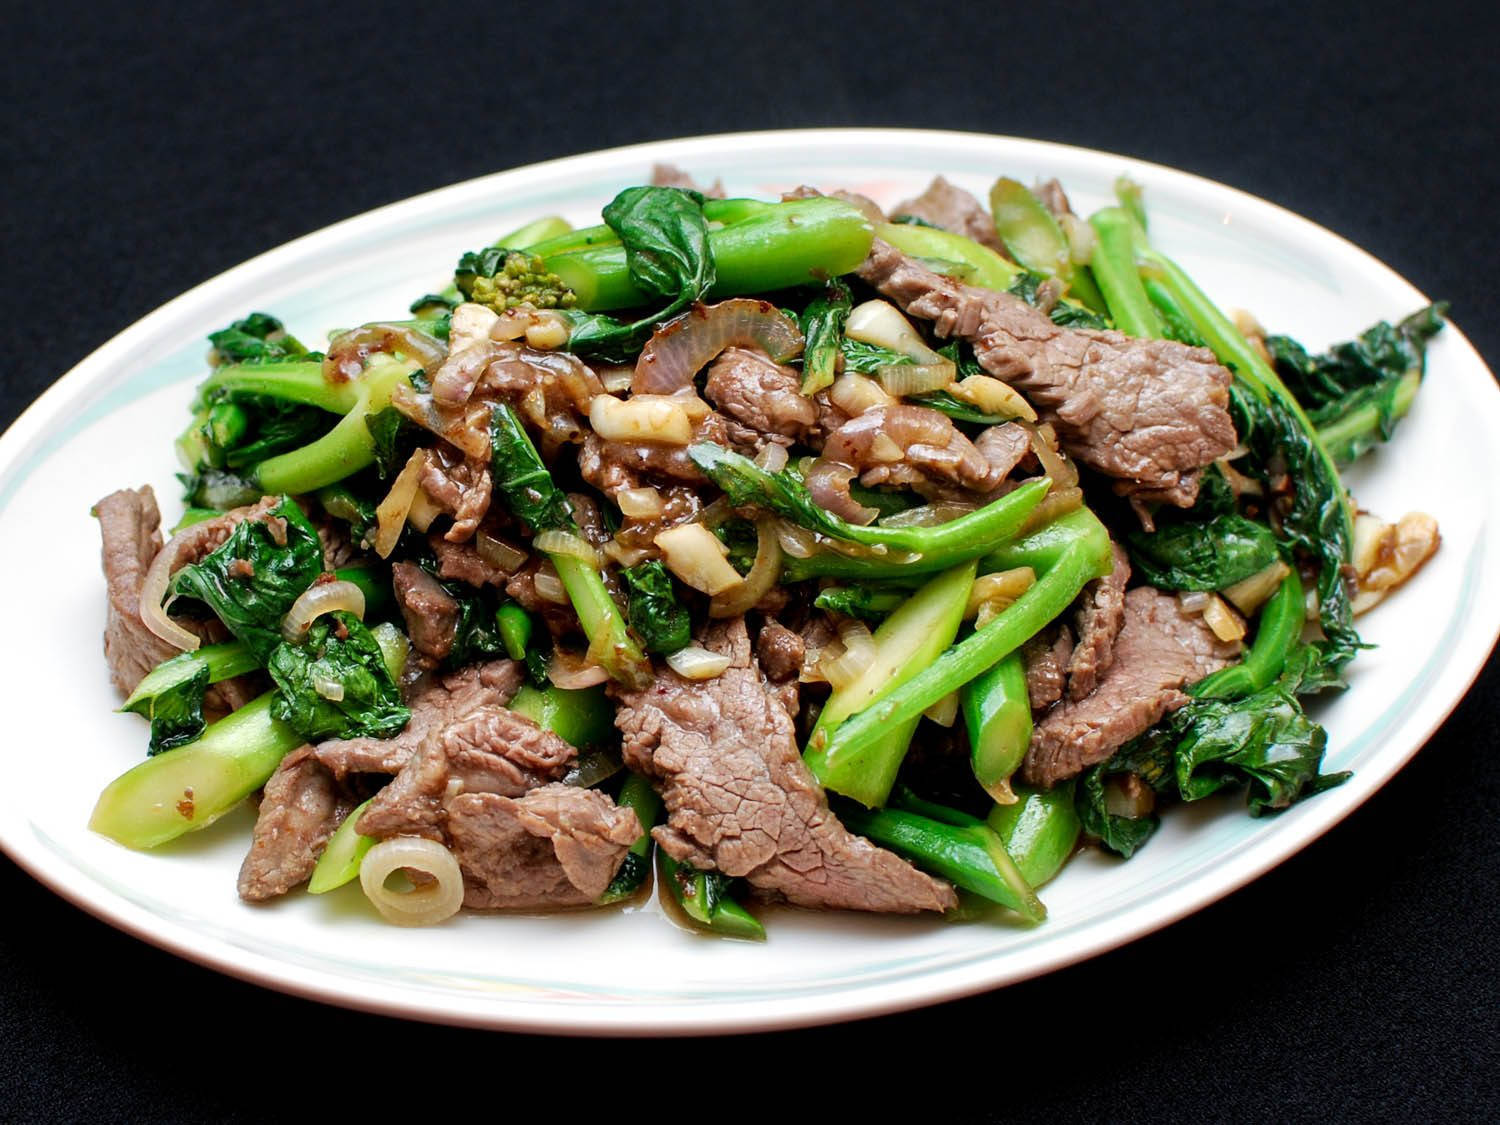 Chinese Broccoli Recipe  Stir Fried Beef With Chinese Broccoli Recipe